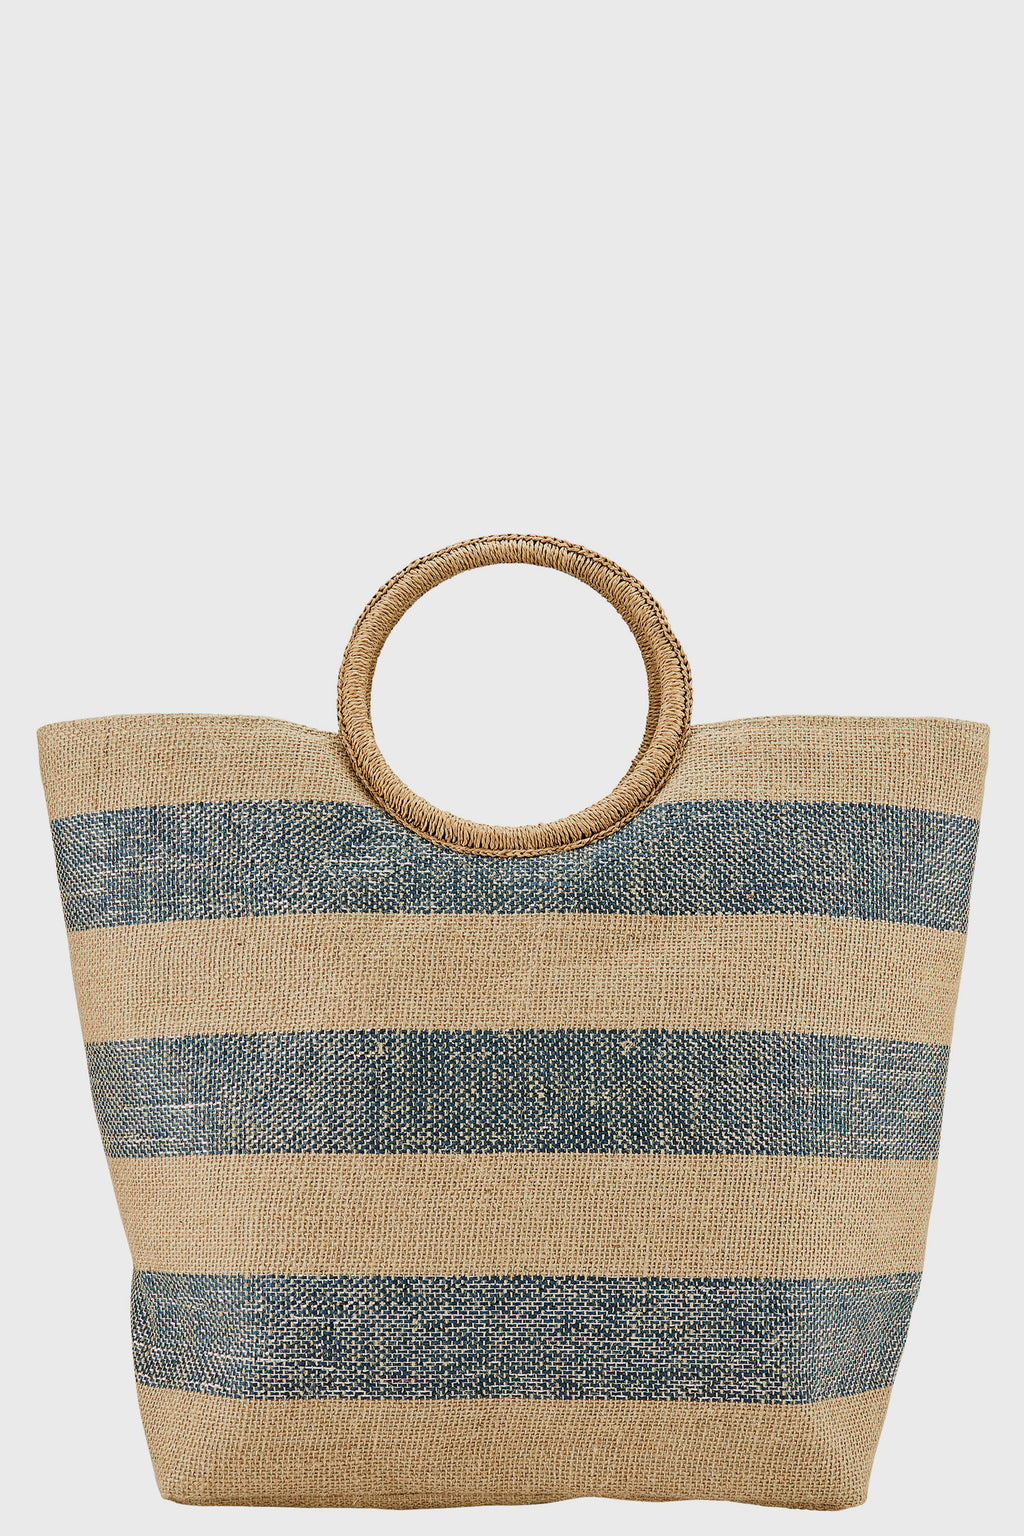 Jute & Lurex Striped Tote with Straw Wrapped Round Handles (BSB3709)-TOTE-BaySky